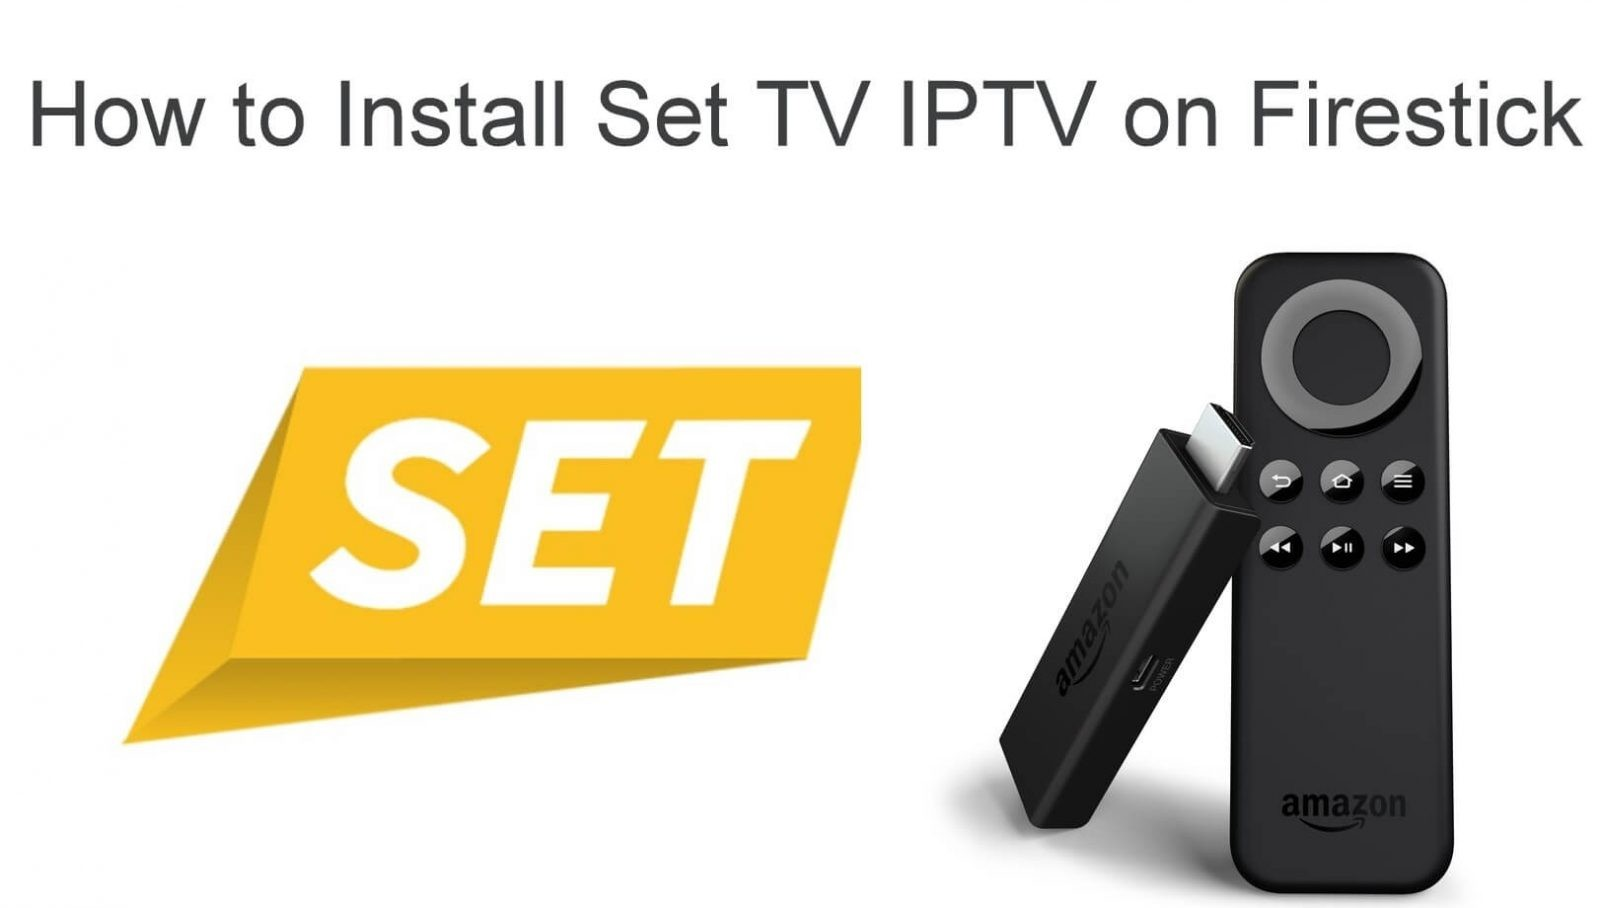 Set TV IPTV on Firestick